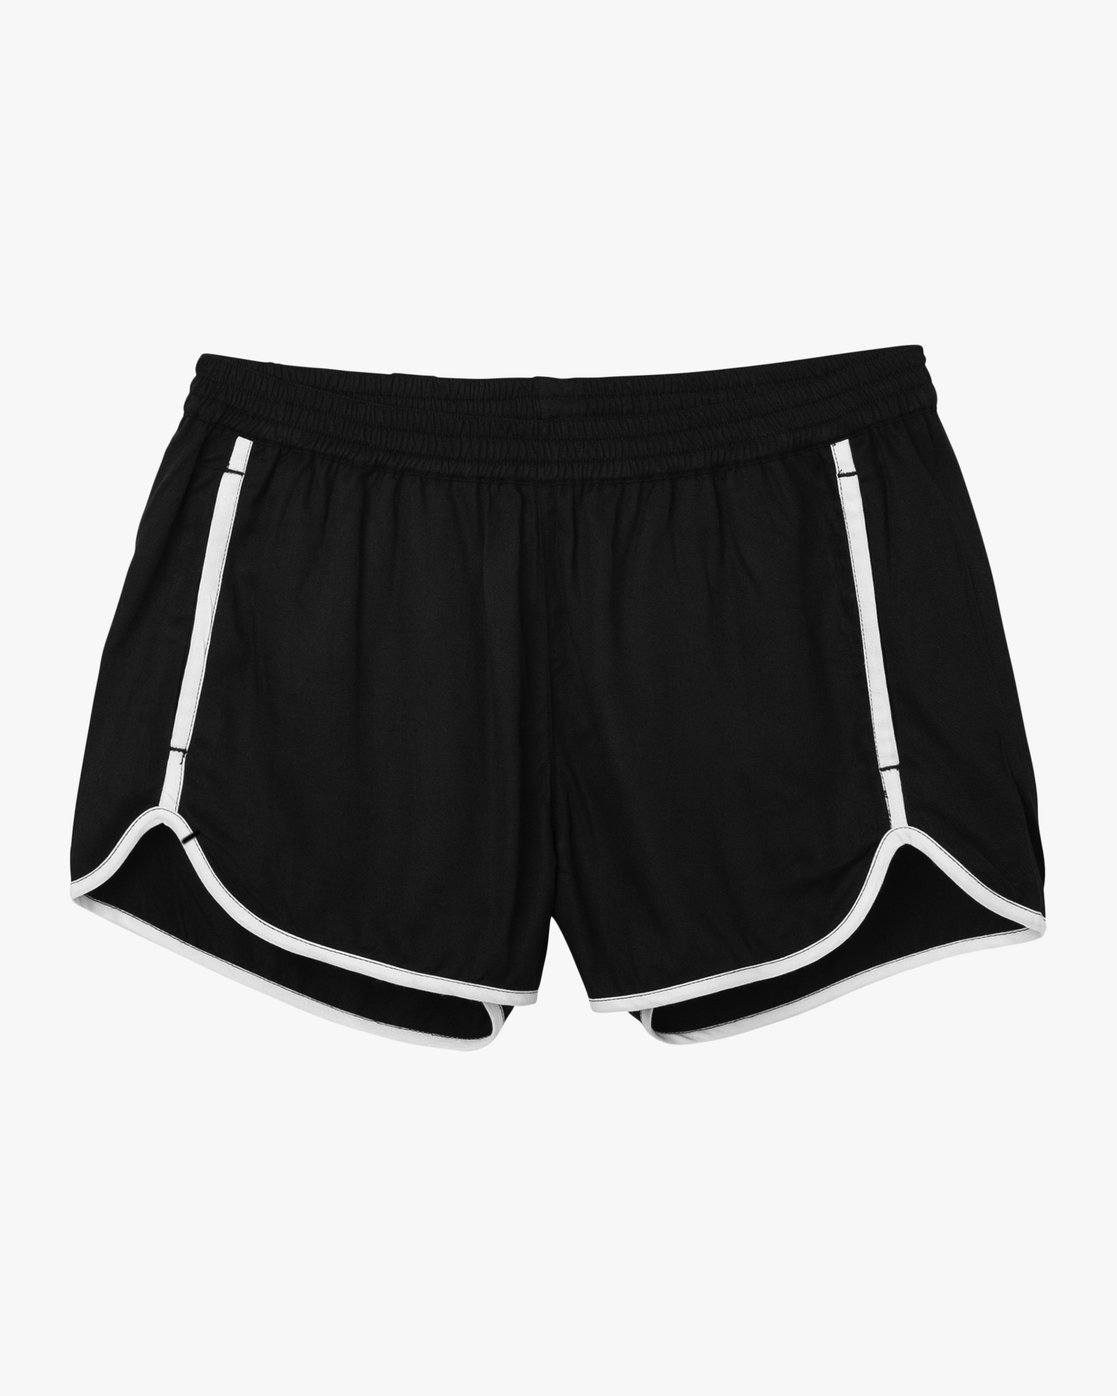 7 CRUISING SHORT Black H3WKRCRVP8 RVCA